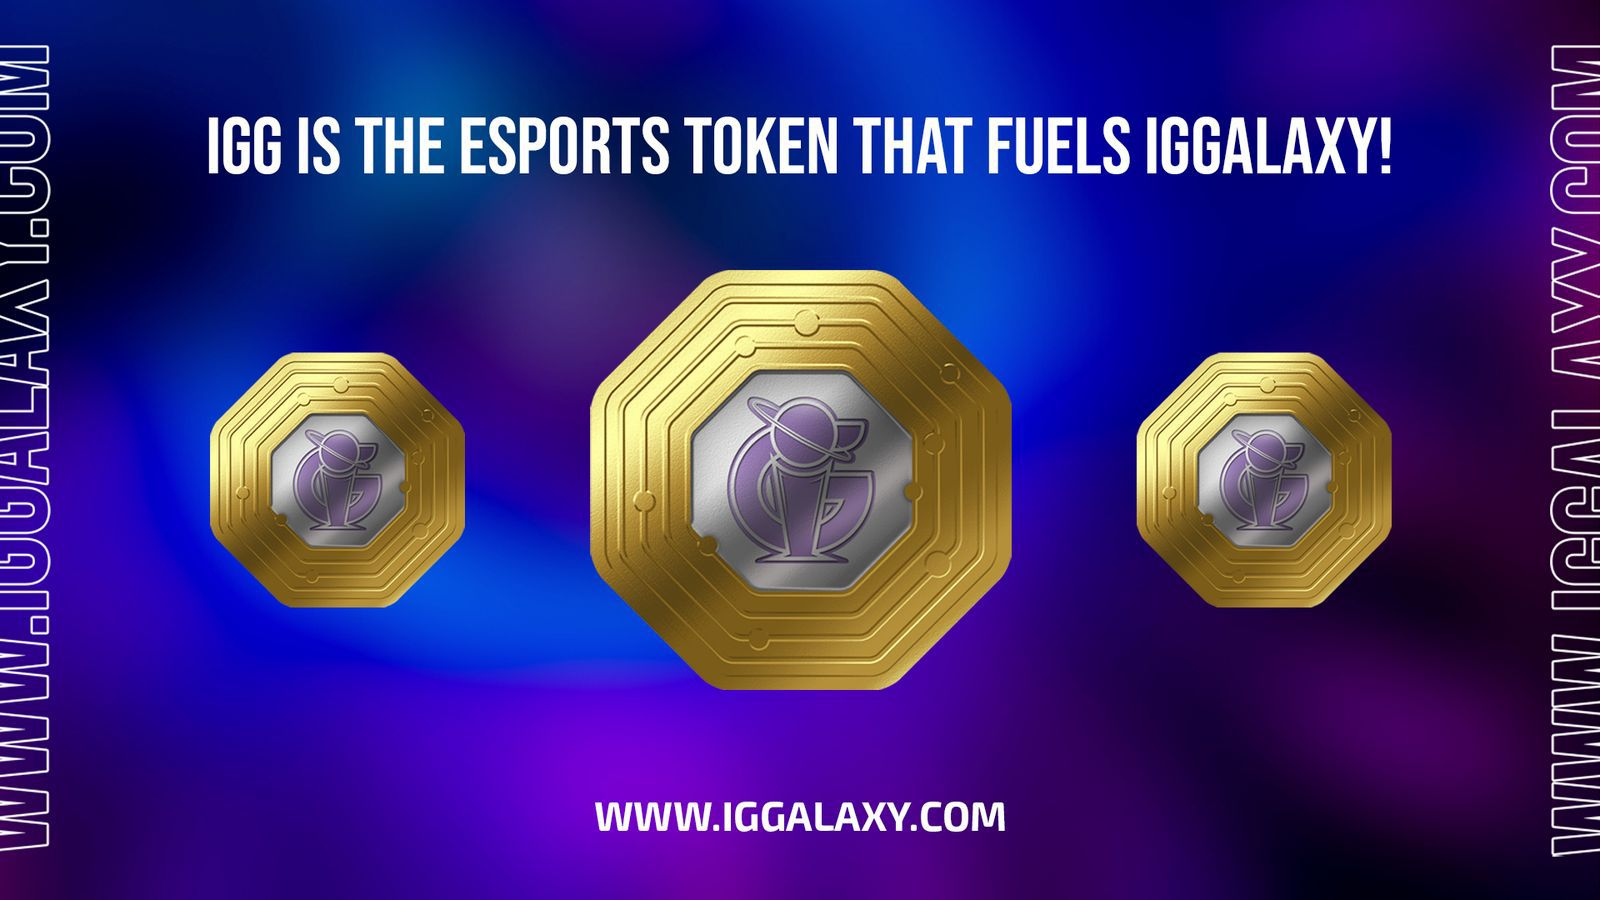 IGG: The esports token of IGGalaxy!